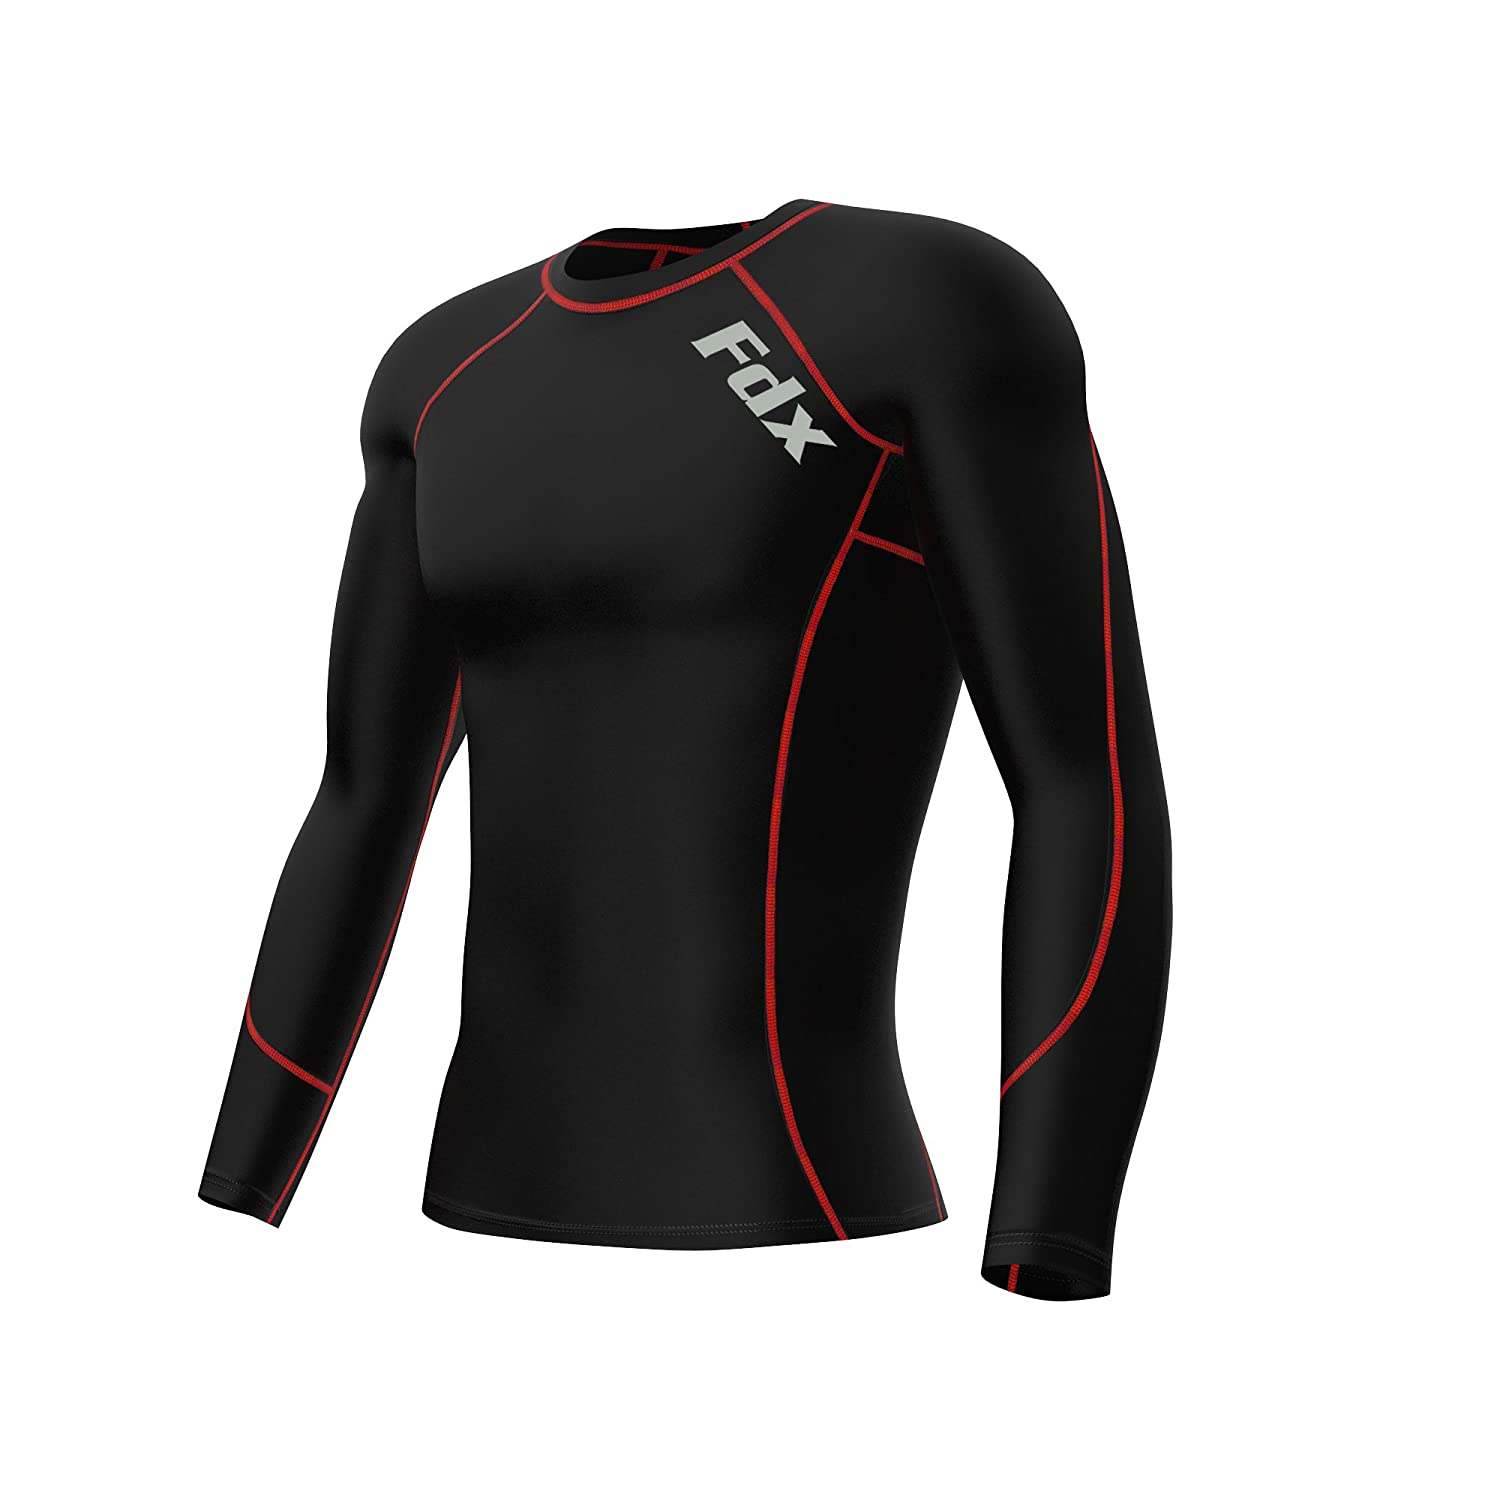 Activewear Tops Men Compression Armor Base Layer Top Long Sleeve Thermal Gym Sport Shirt Cycling